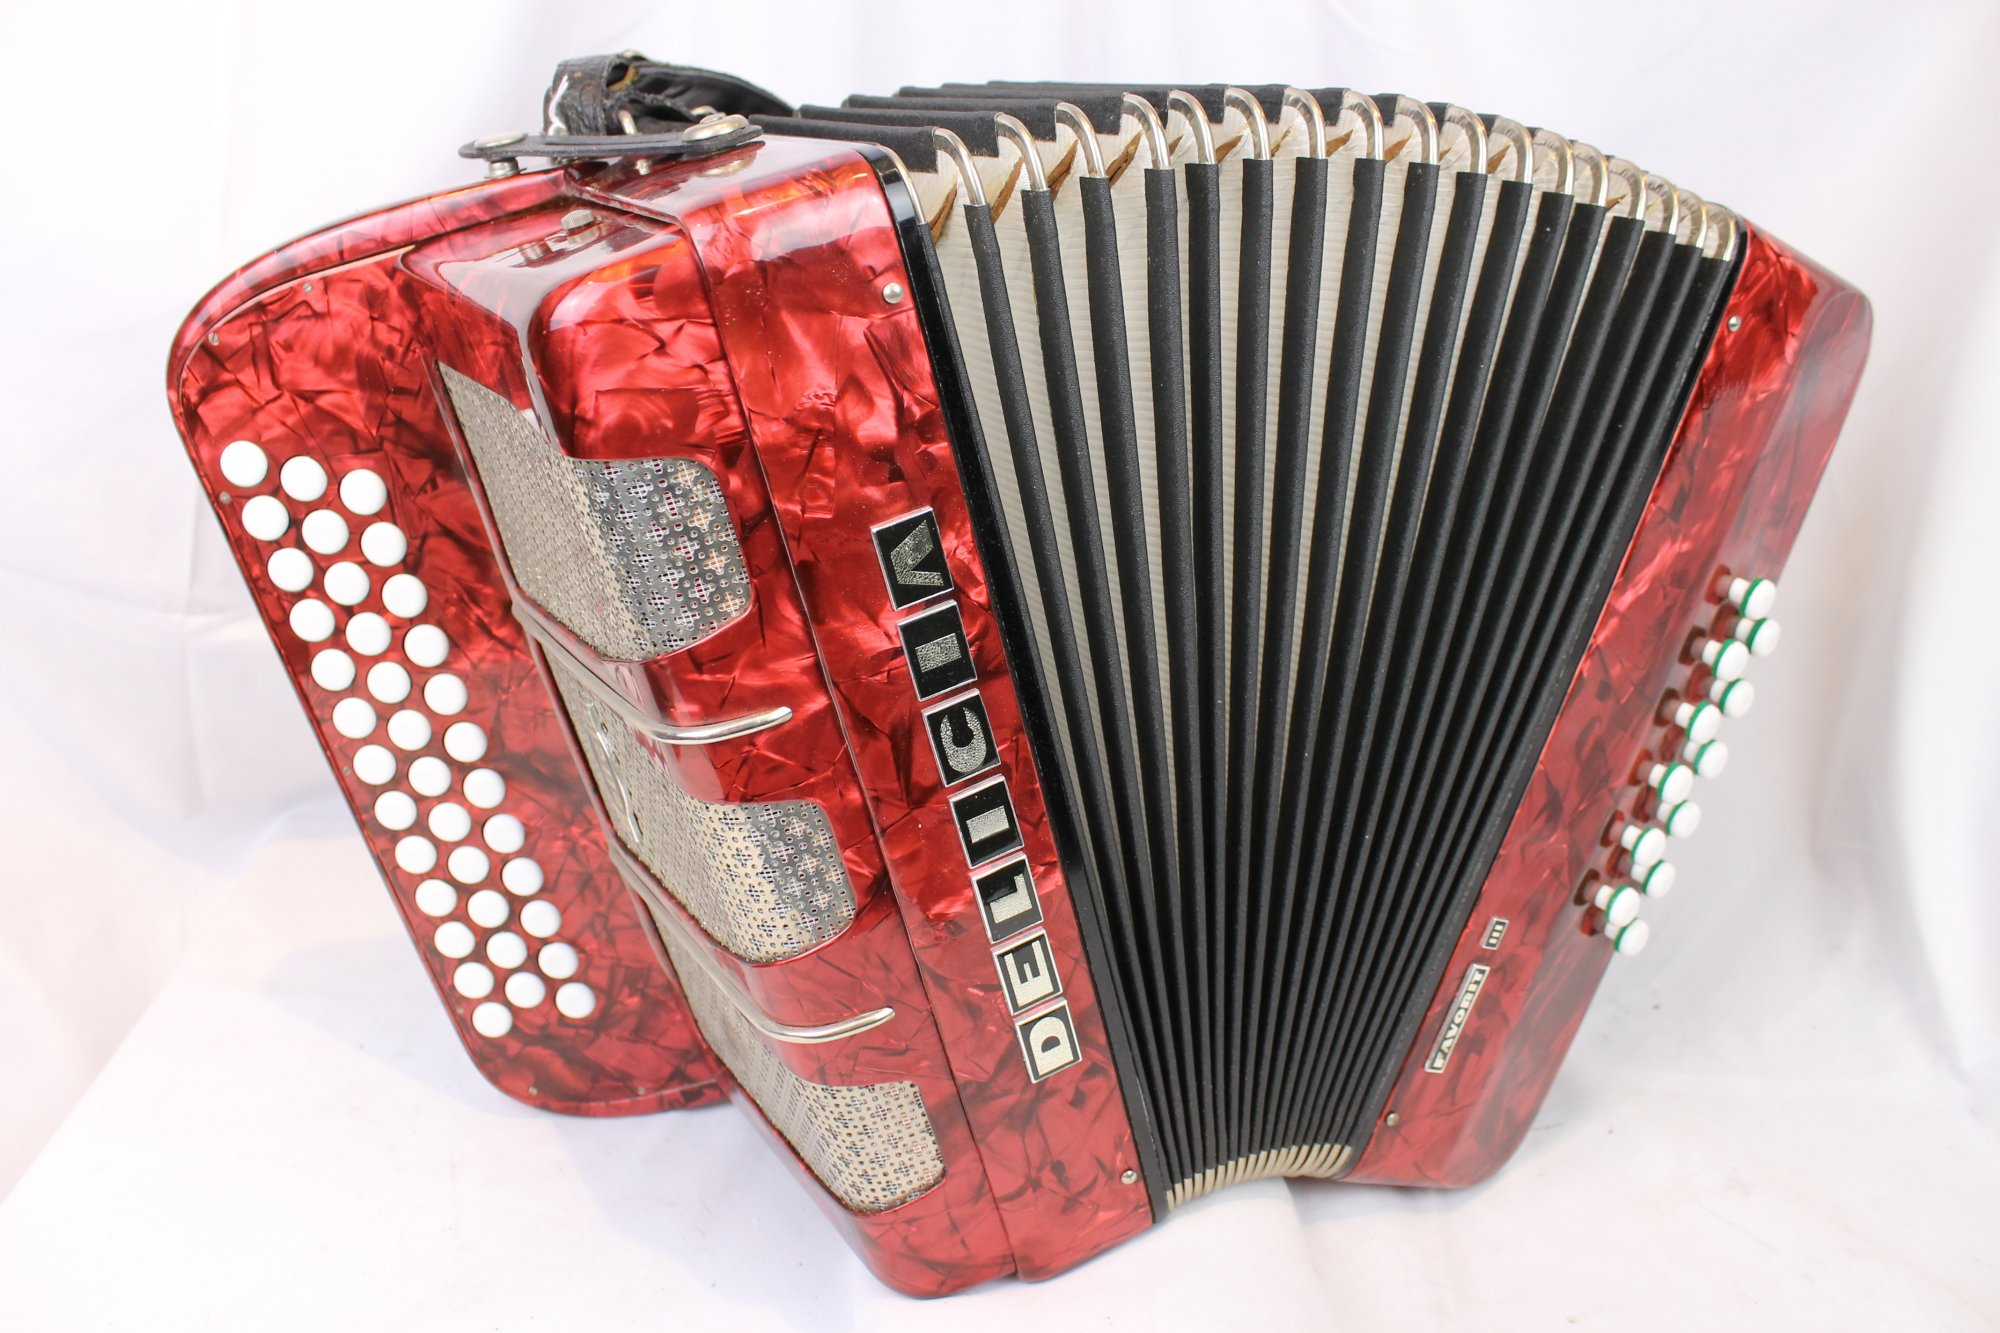 4121 - Red Delicia Favorit III Steirische Diatonic Button Accordion CFBb MMM 37 12